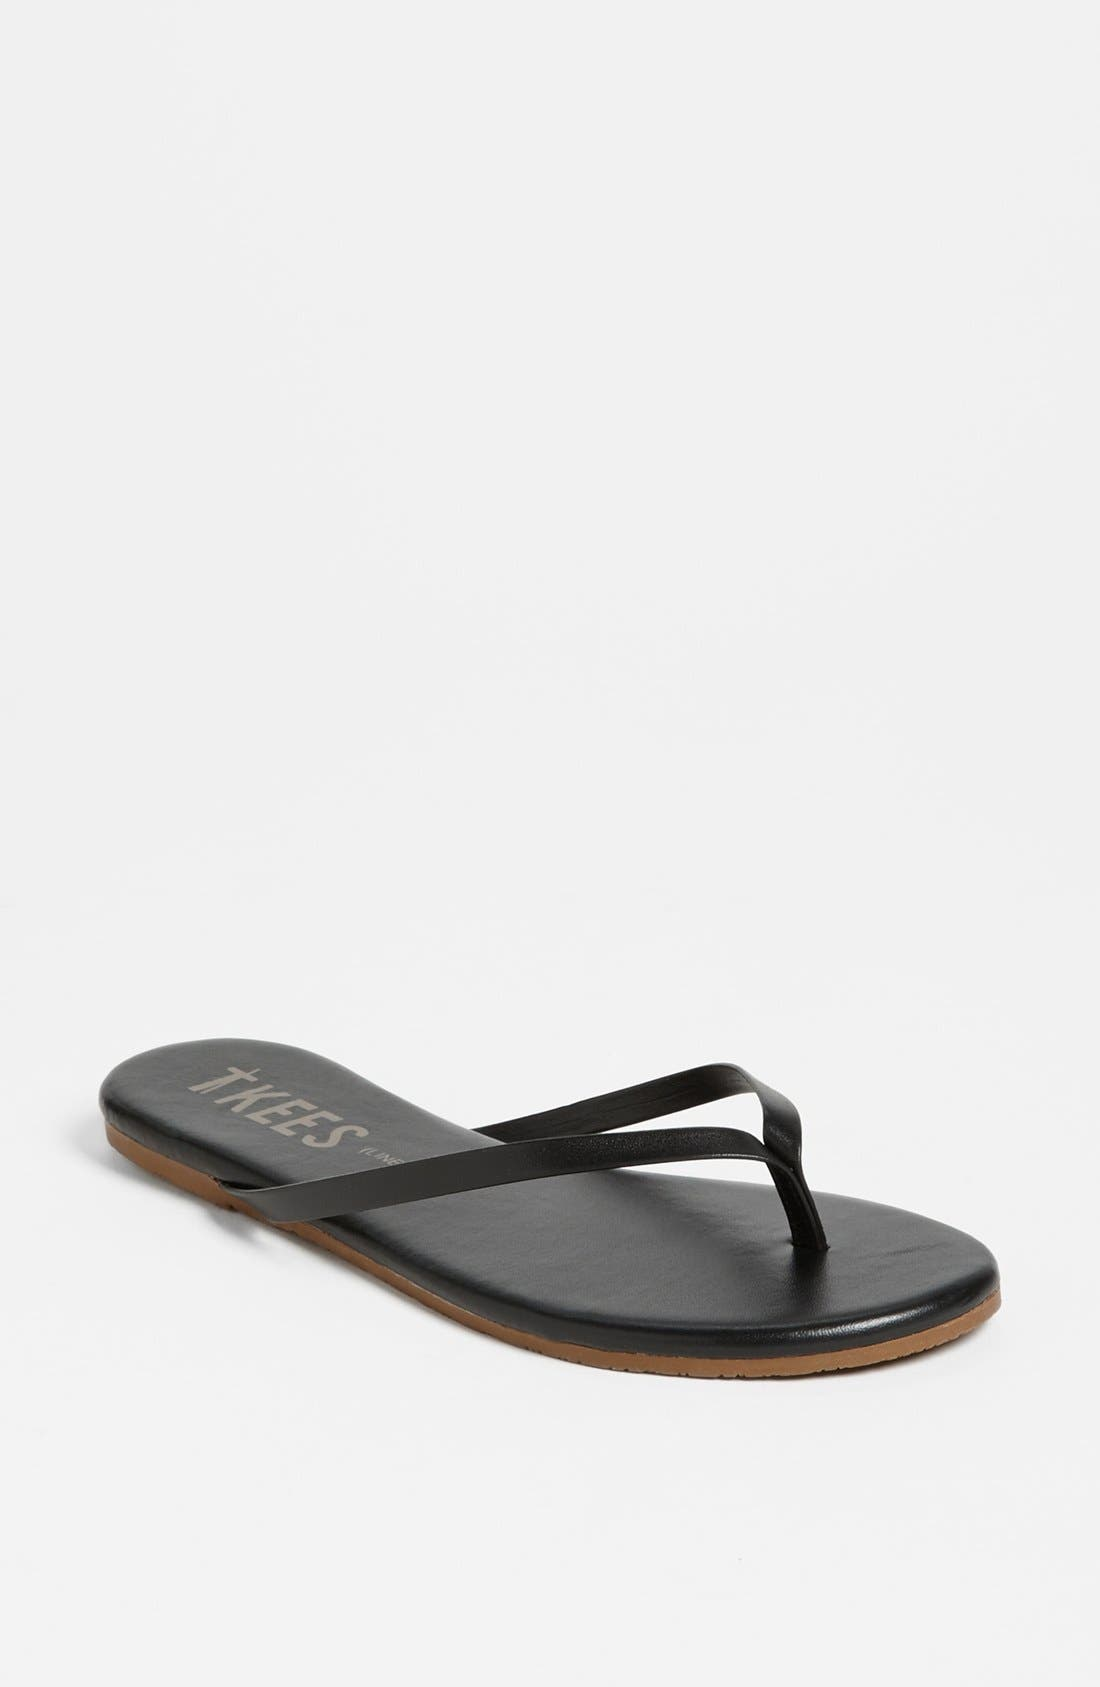 Main Image - TKEES 'Liners' Flip Flop